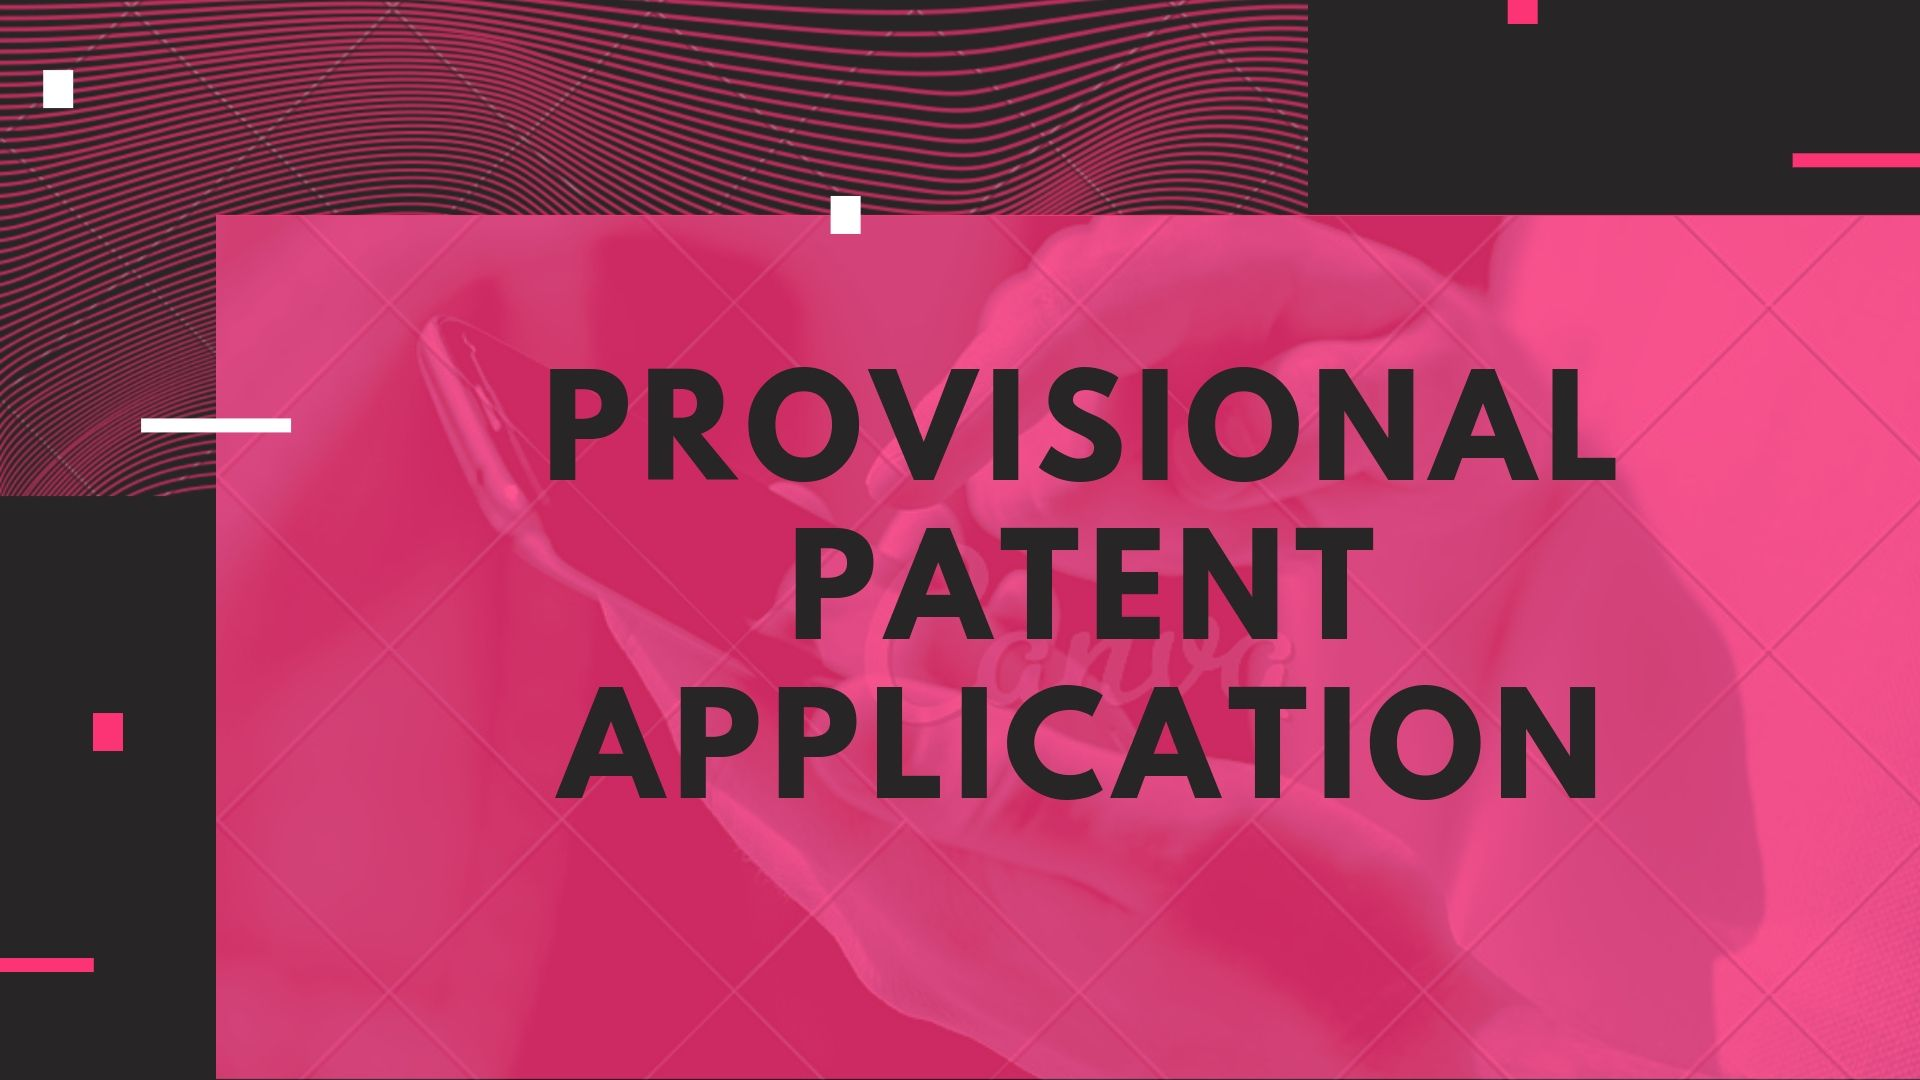 A provisional patent application is not examined, so its claims not get rejected in an office action. Depending on what was the problem that is being referred to as a rejection, a provisional application that fixes the problem might be subsequently filed with a later filing date